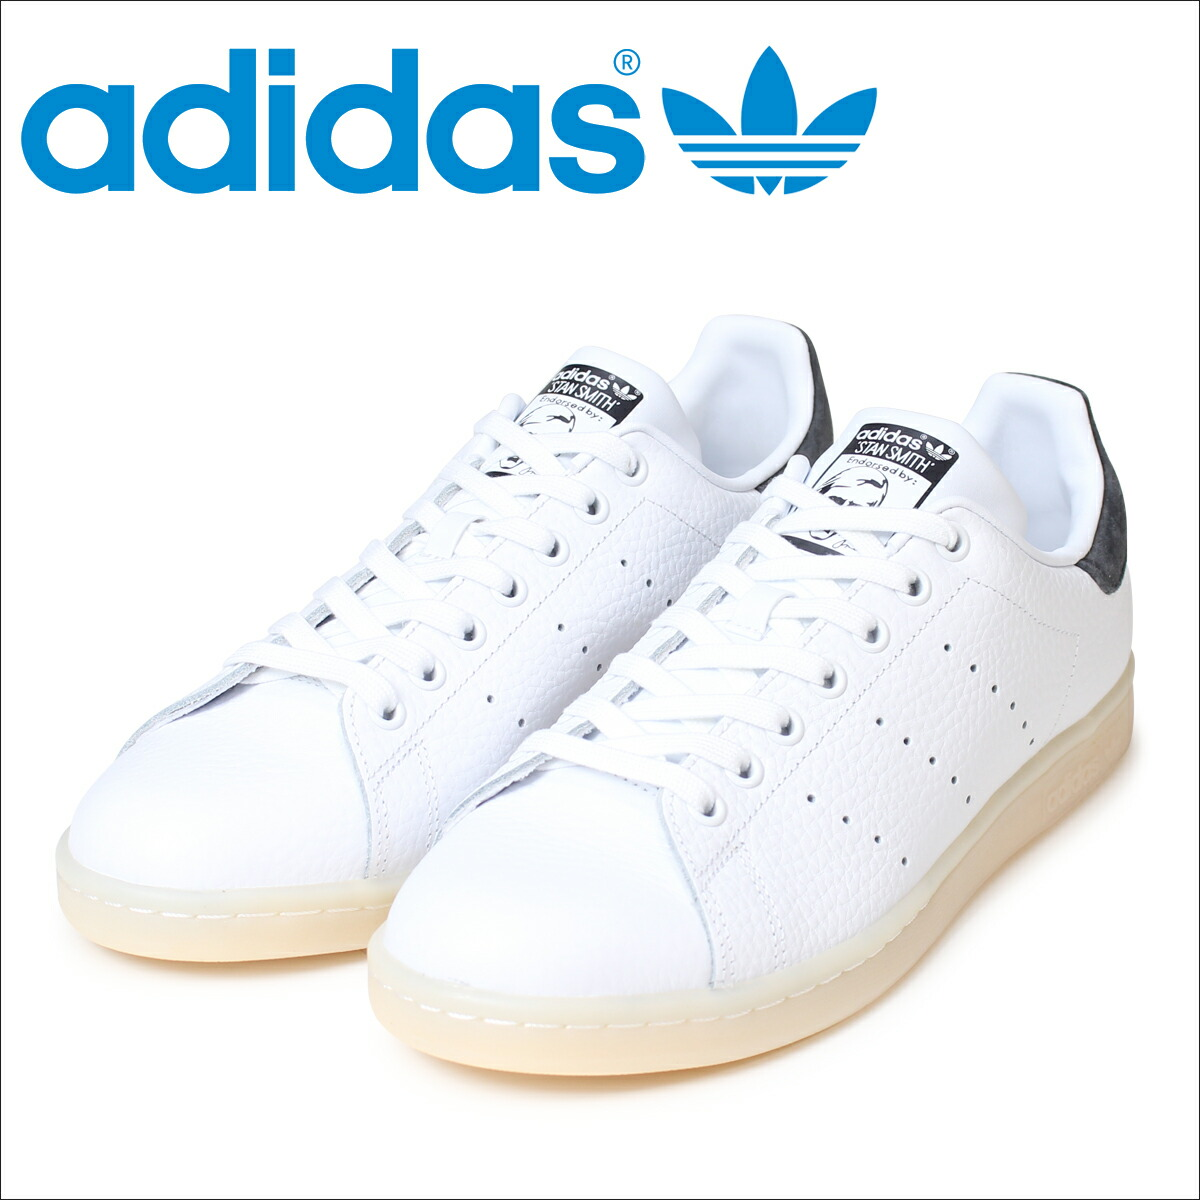 adidas stan smith online shopping